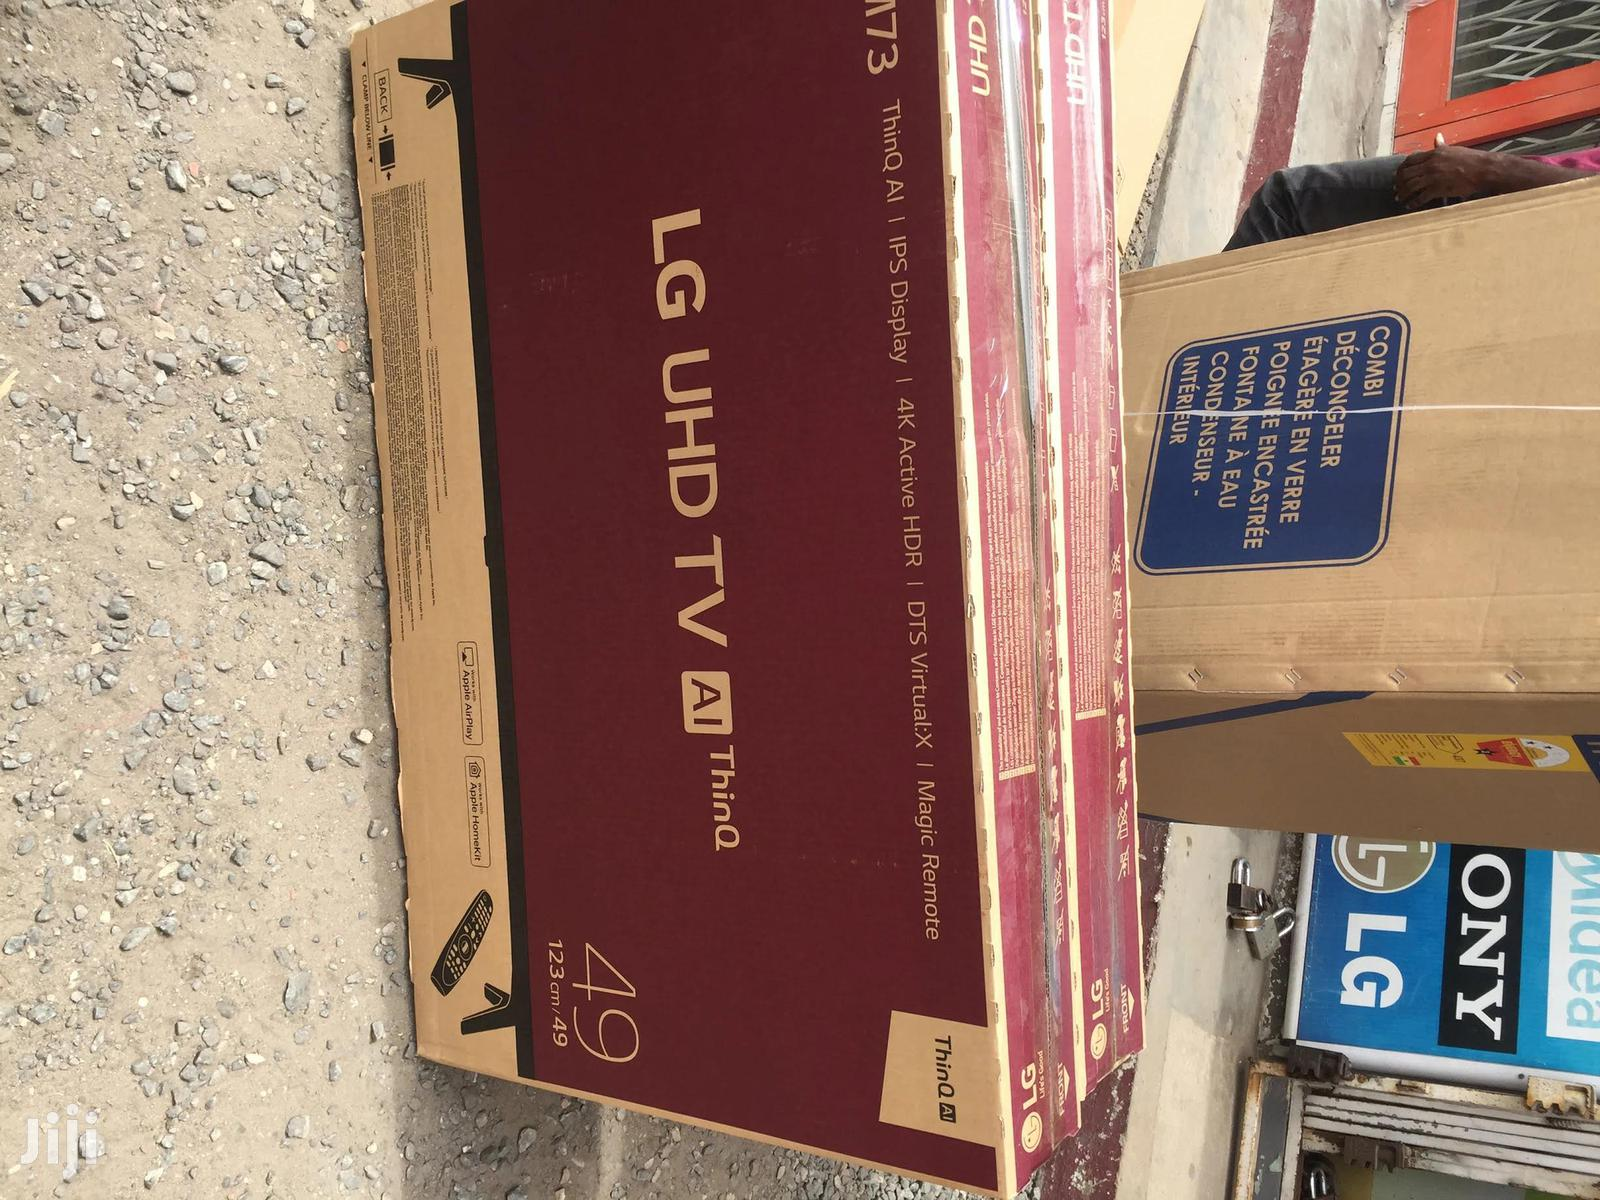 """Enjoy All Latest Movies on LG 49""""Smart 4K UHD Satellite Thinq AI TV 